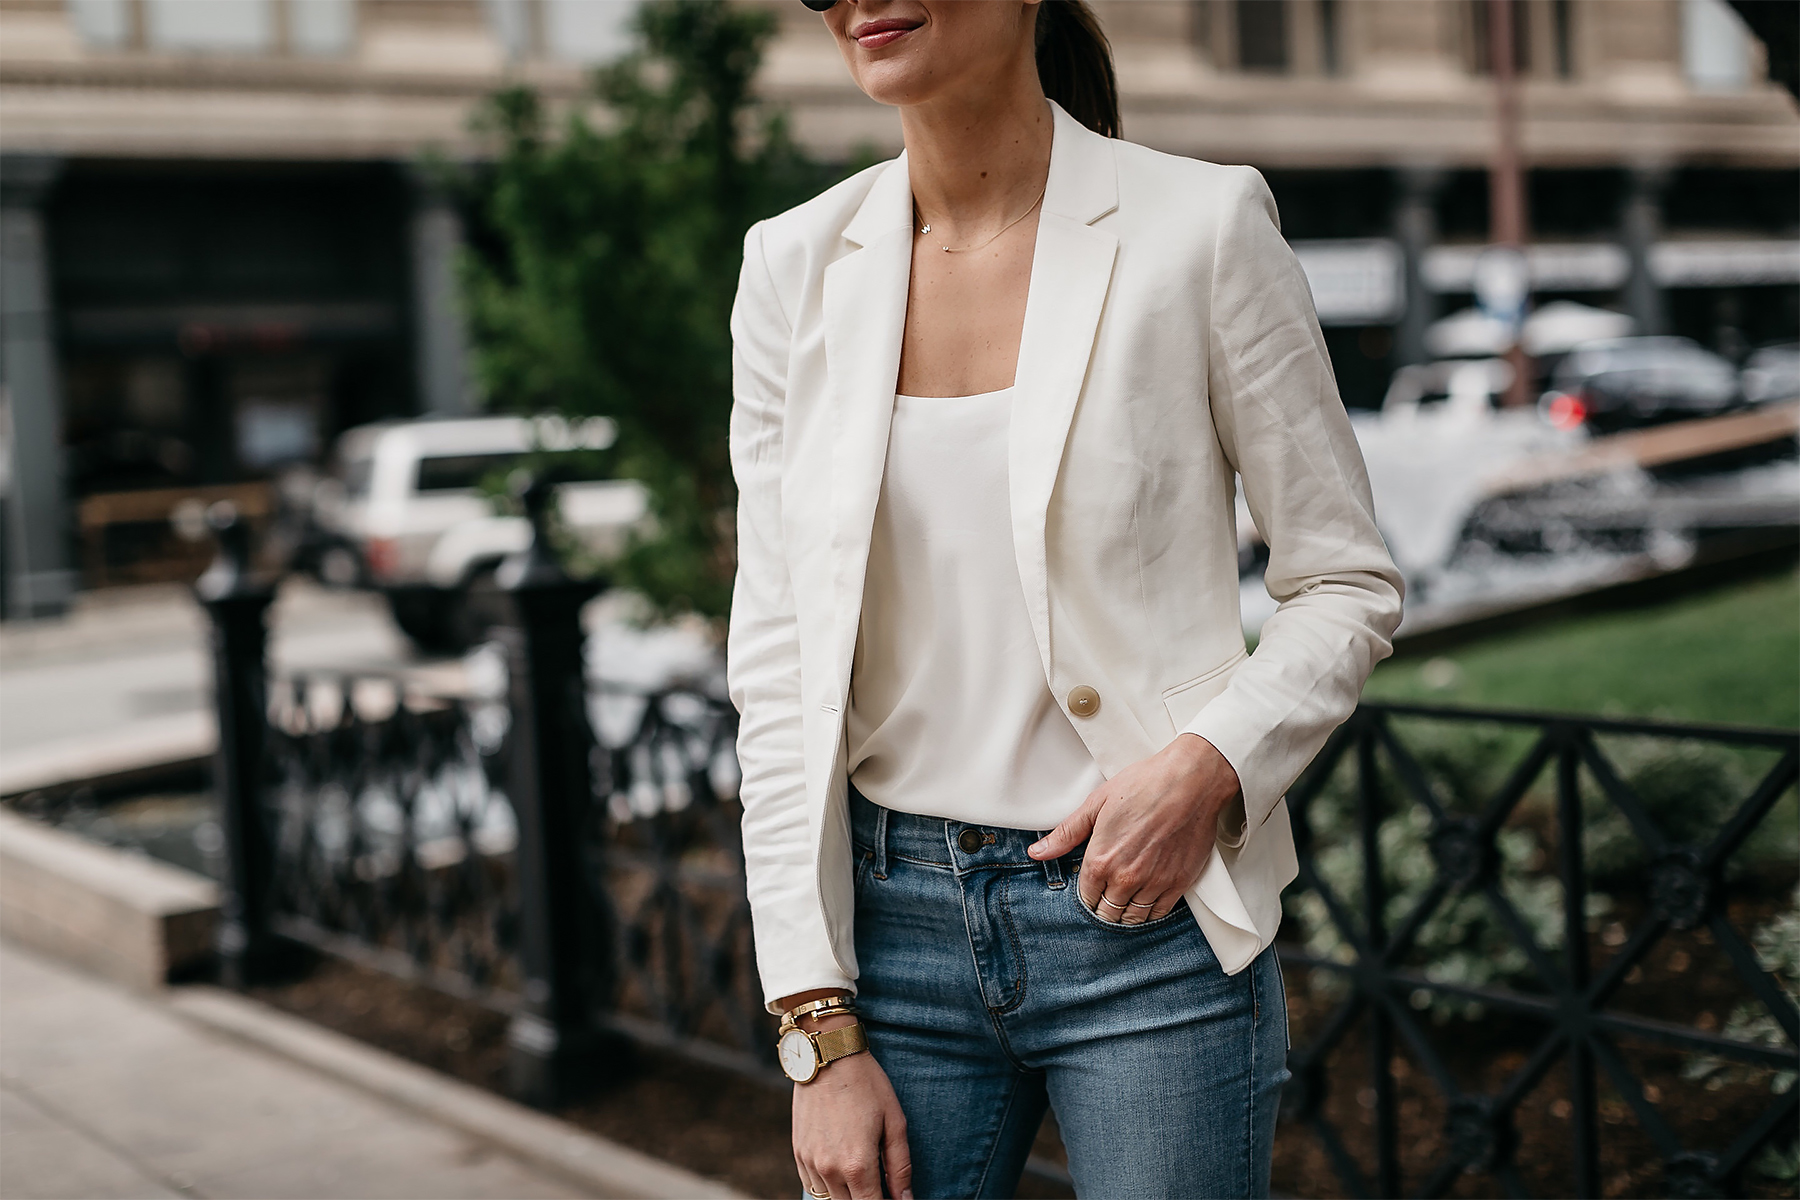 Woman Wearing Ann Taylor White Blazer White Cami Jeans Fashion Jackson Dallas Blogger Fashion Blogger Street Style